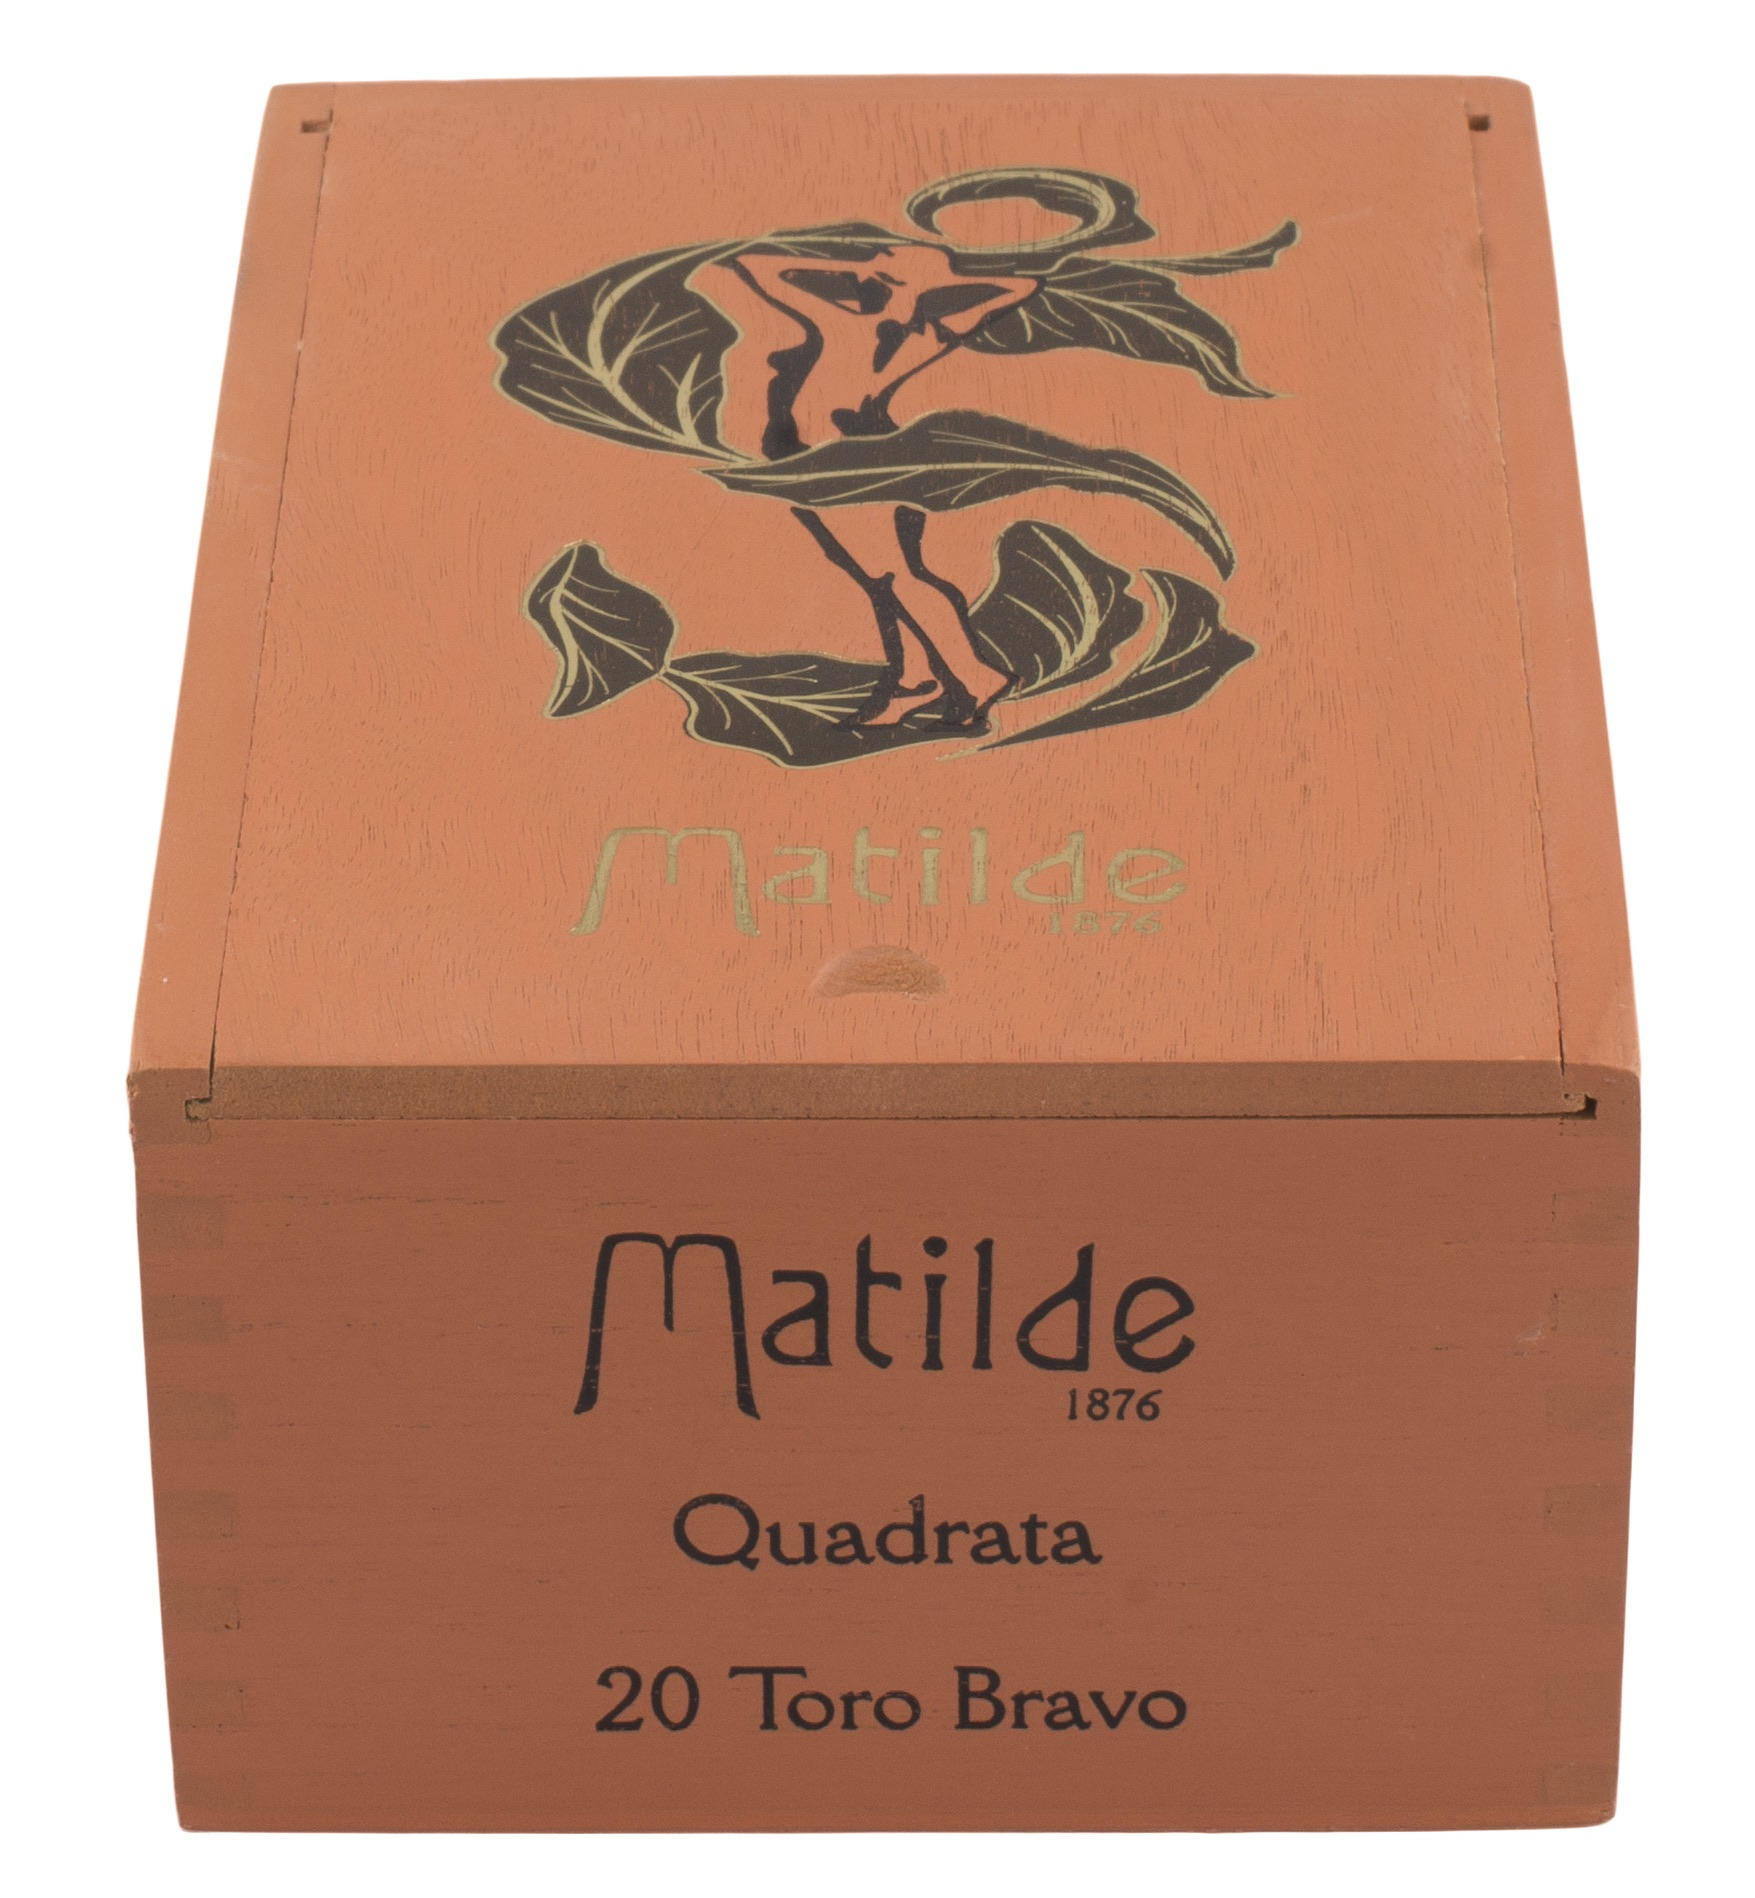 Matilde_Quadrata_Toro_Bravo_Closed_Box_